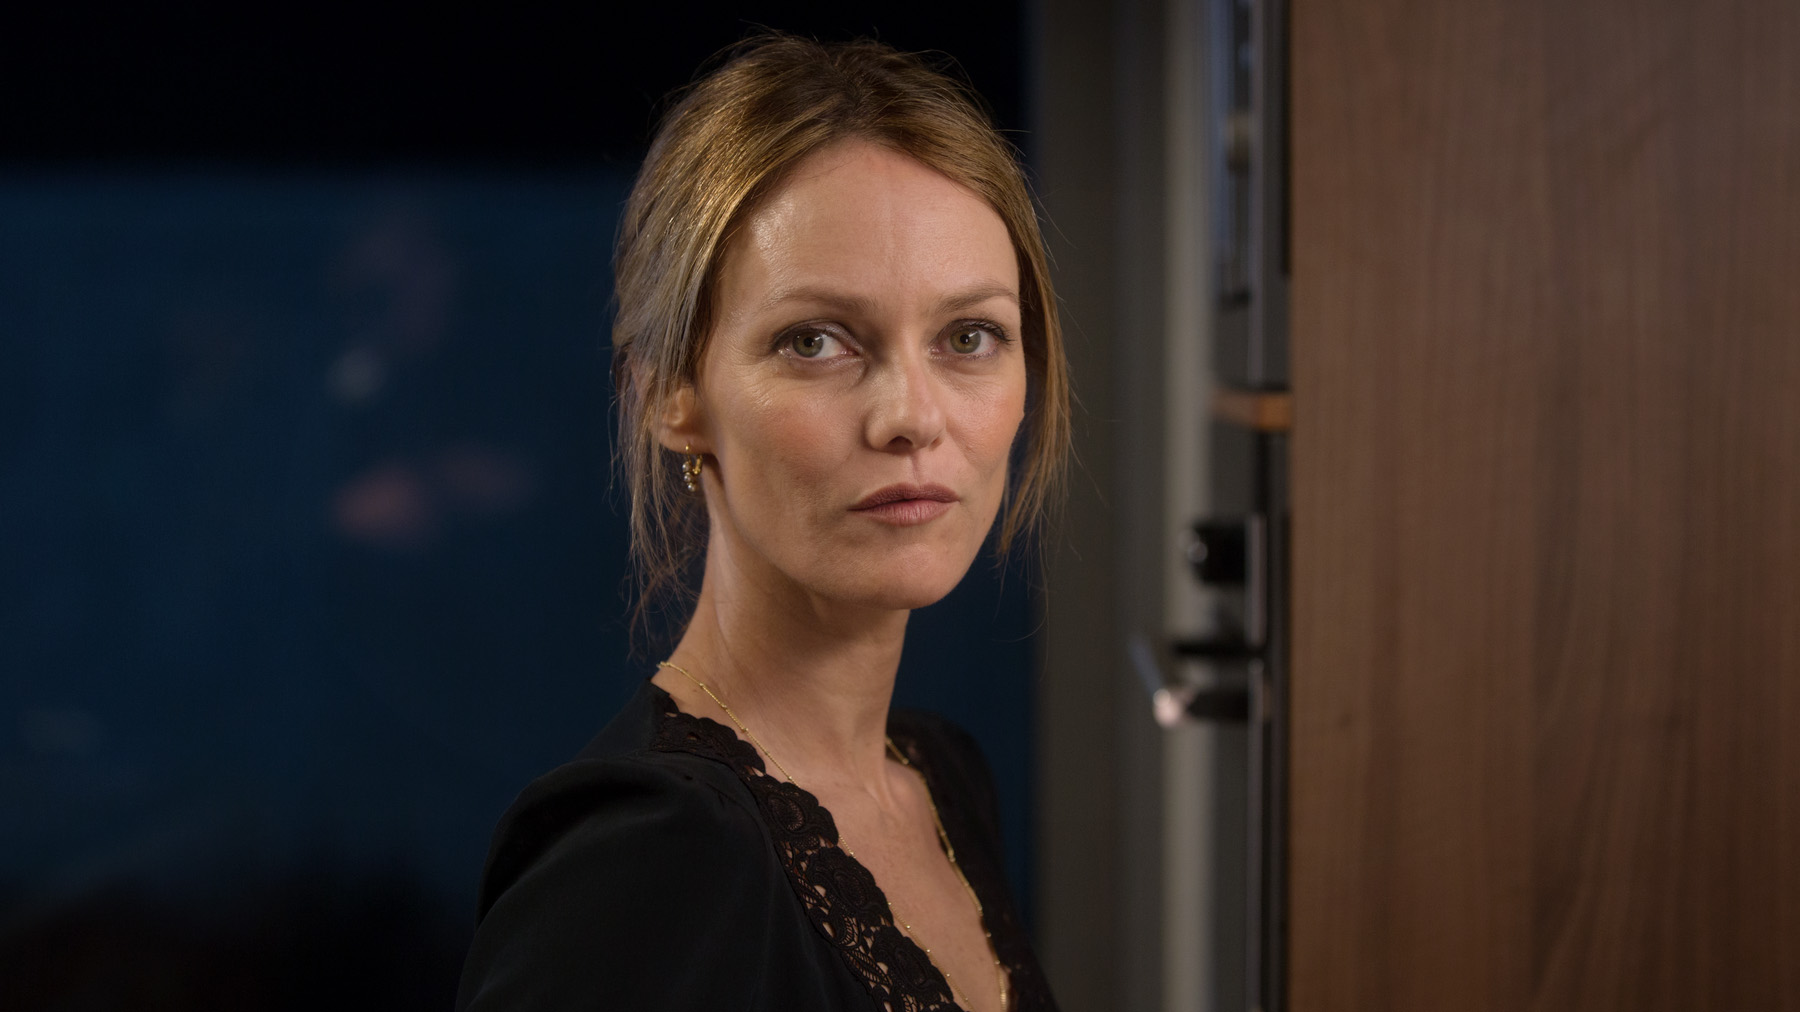 Vanessa Paradis in CHIEN directed by Samuel Benchetrit - DoP Guillaume Deffontaines. Courtesy A Single Man Productions/ UMedia